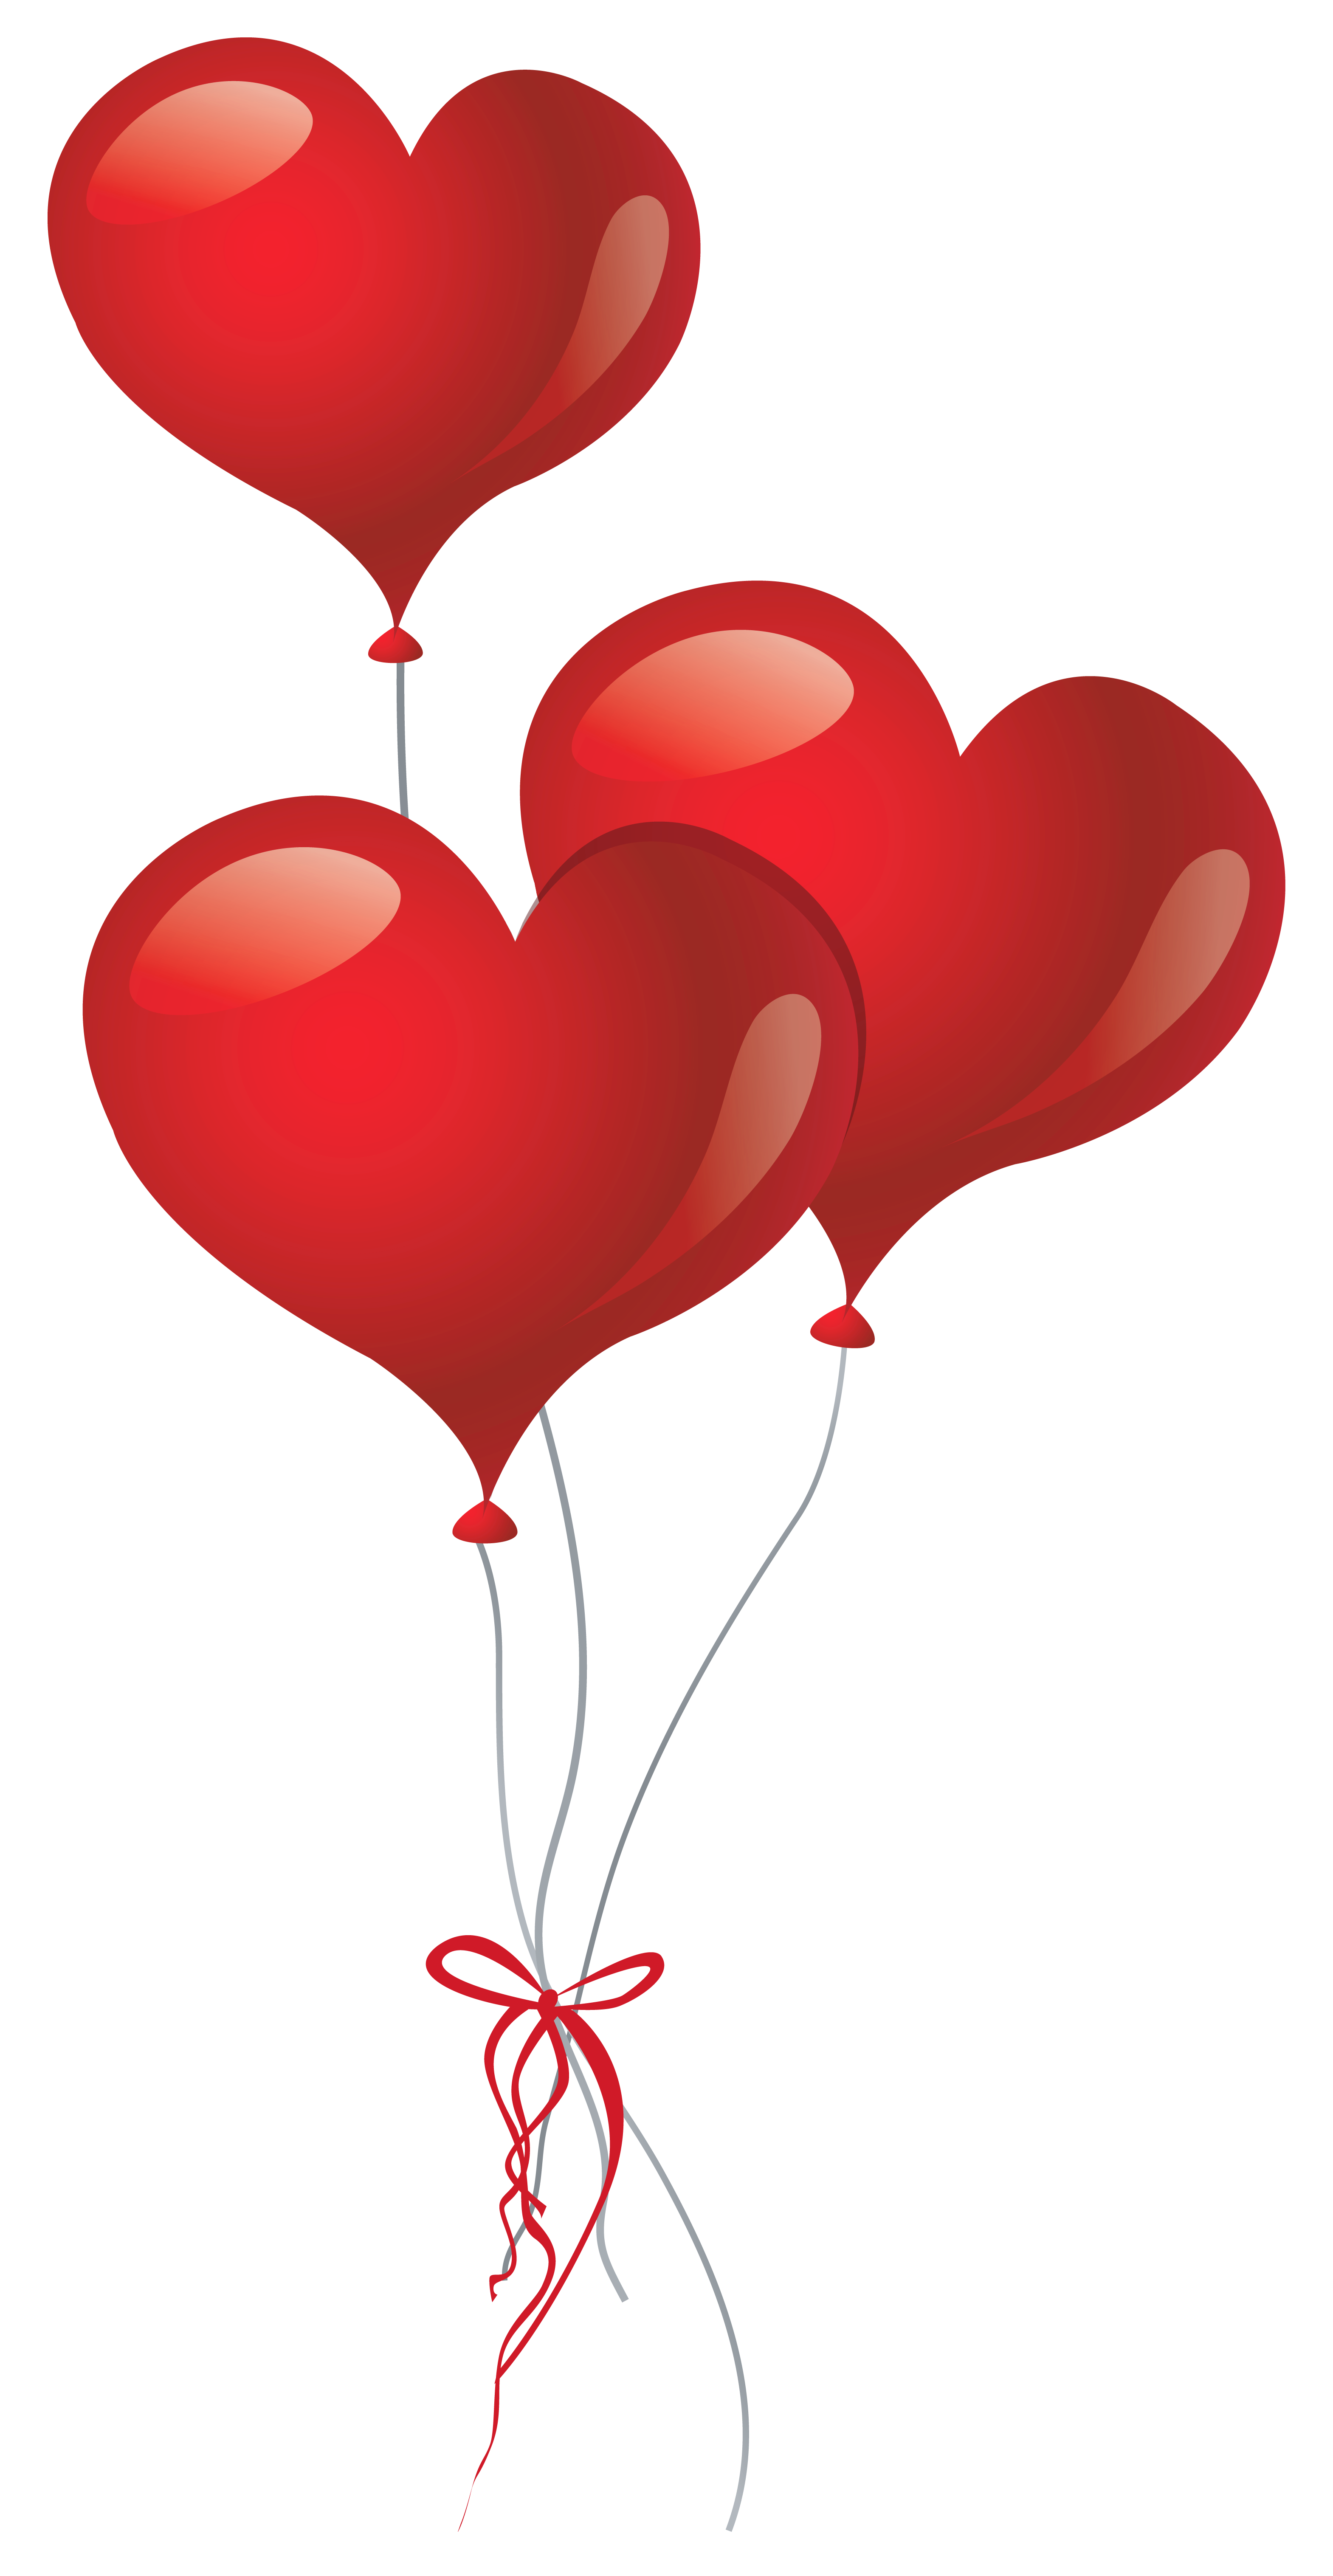 Heart balloons clipart clip art library stock Heart Balloons PNG Clipart Picture | Gallery Yopriceville - High ... clip art library stock